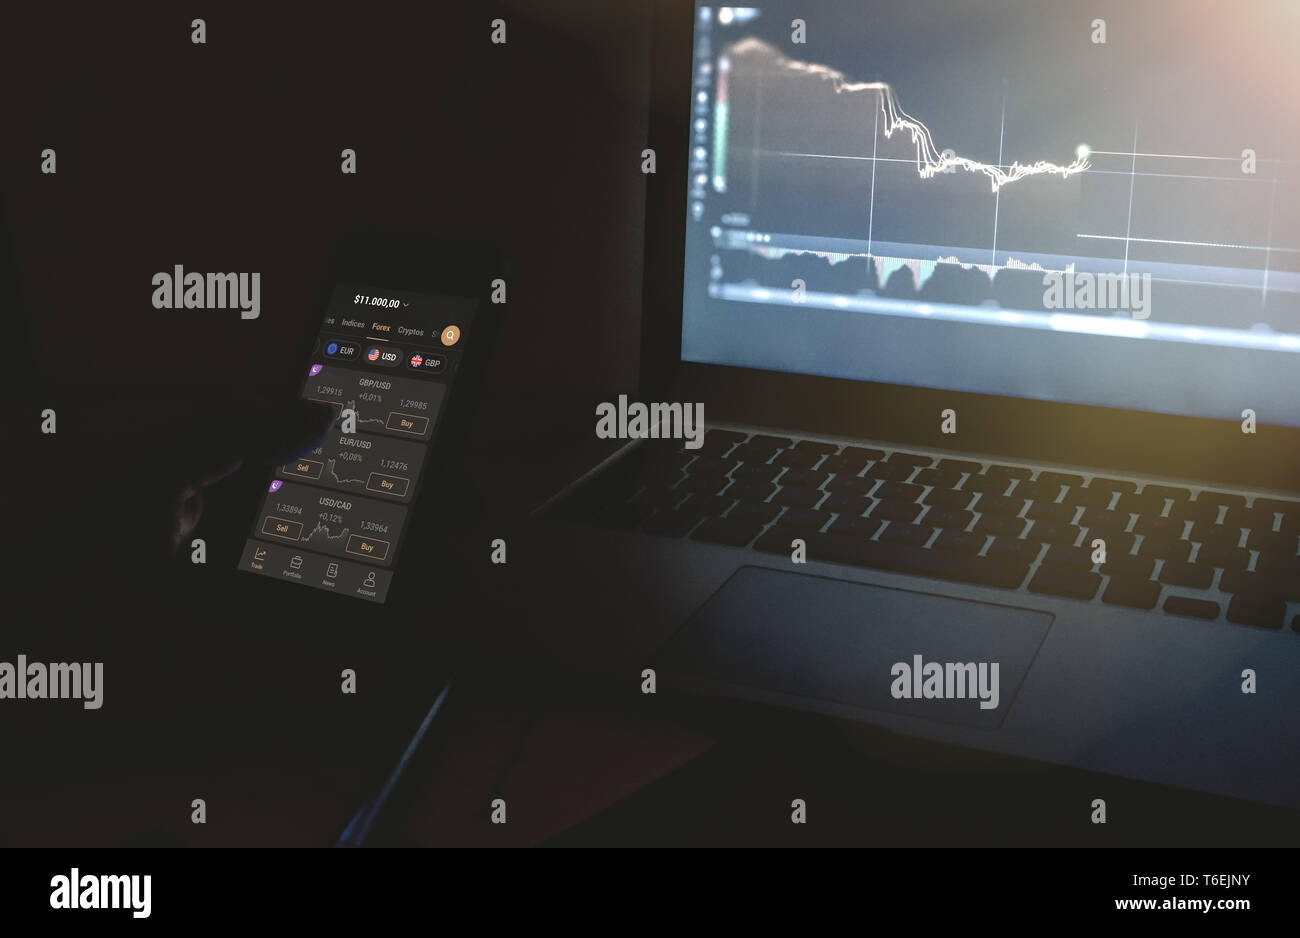 Vienna Austria April.26 2019, Day trader mobile devices. Forex day trader holding mobile phone looking at charts in front of computer screens in dark - Stock Image